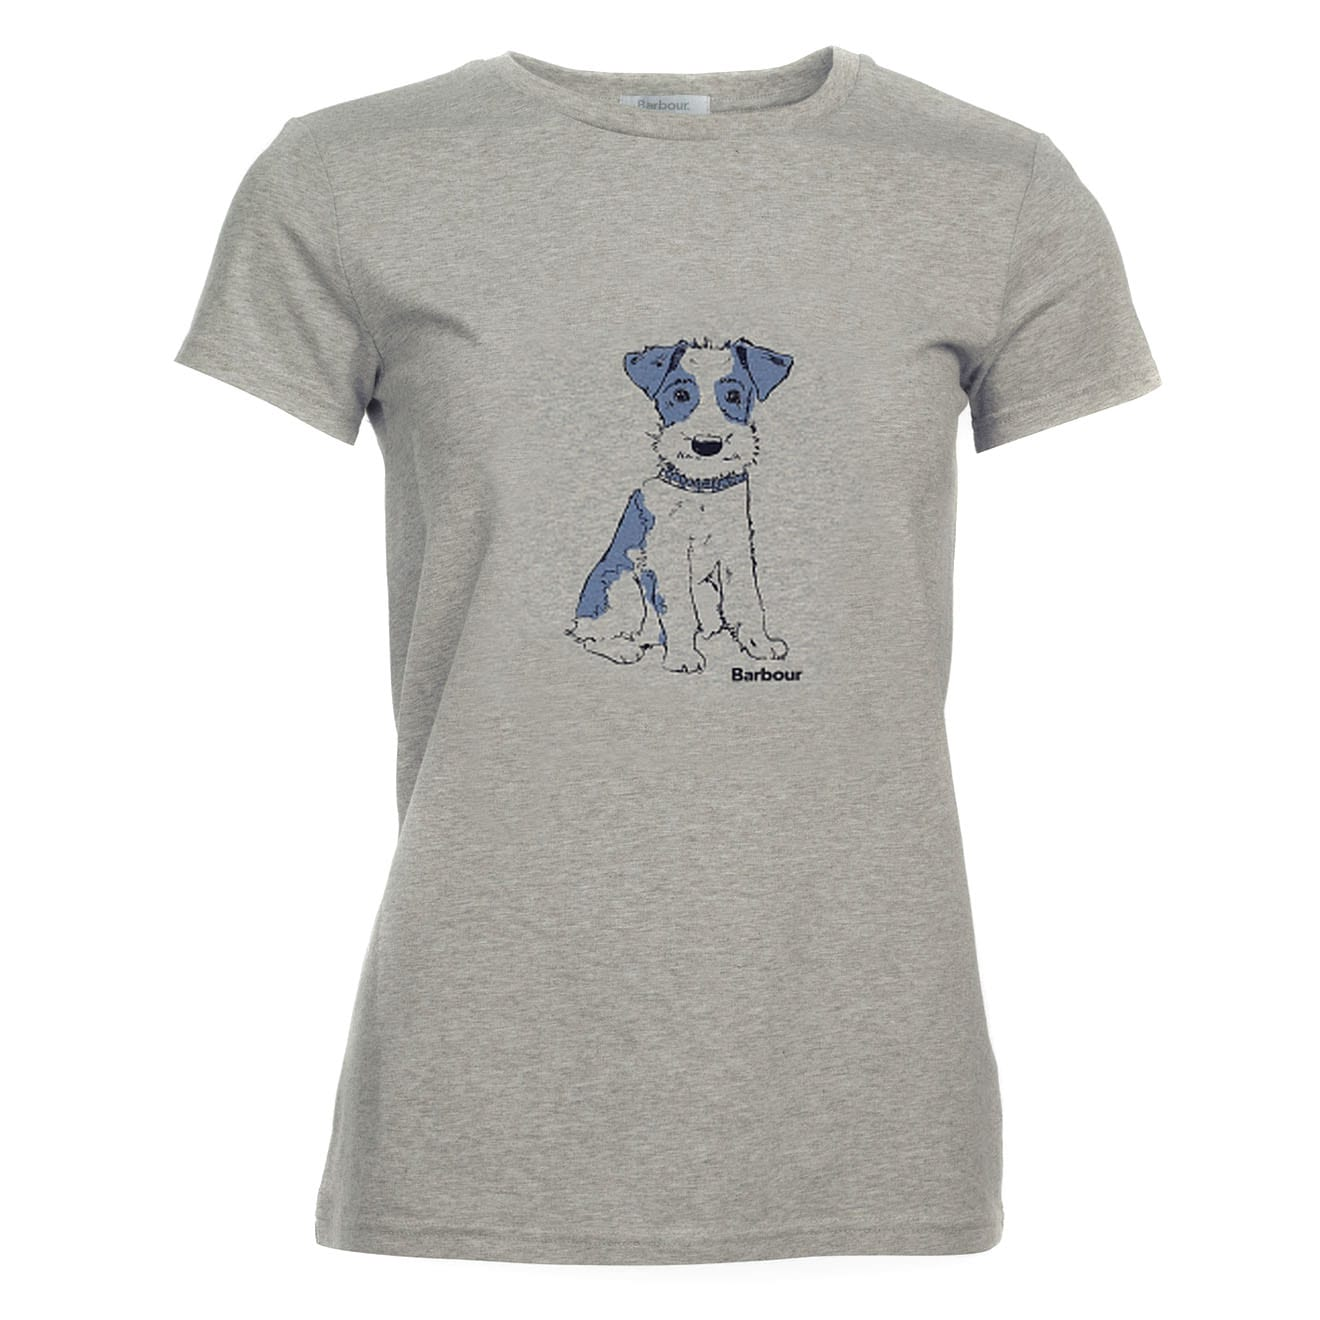 The Barbour Womens Brimham T-Shirt is crafted of a soft 100% cotton and features a Barbour fox terrier print to the front. A casual tee that'll style nicely with jeans.